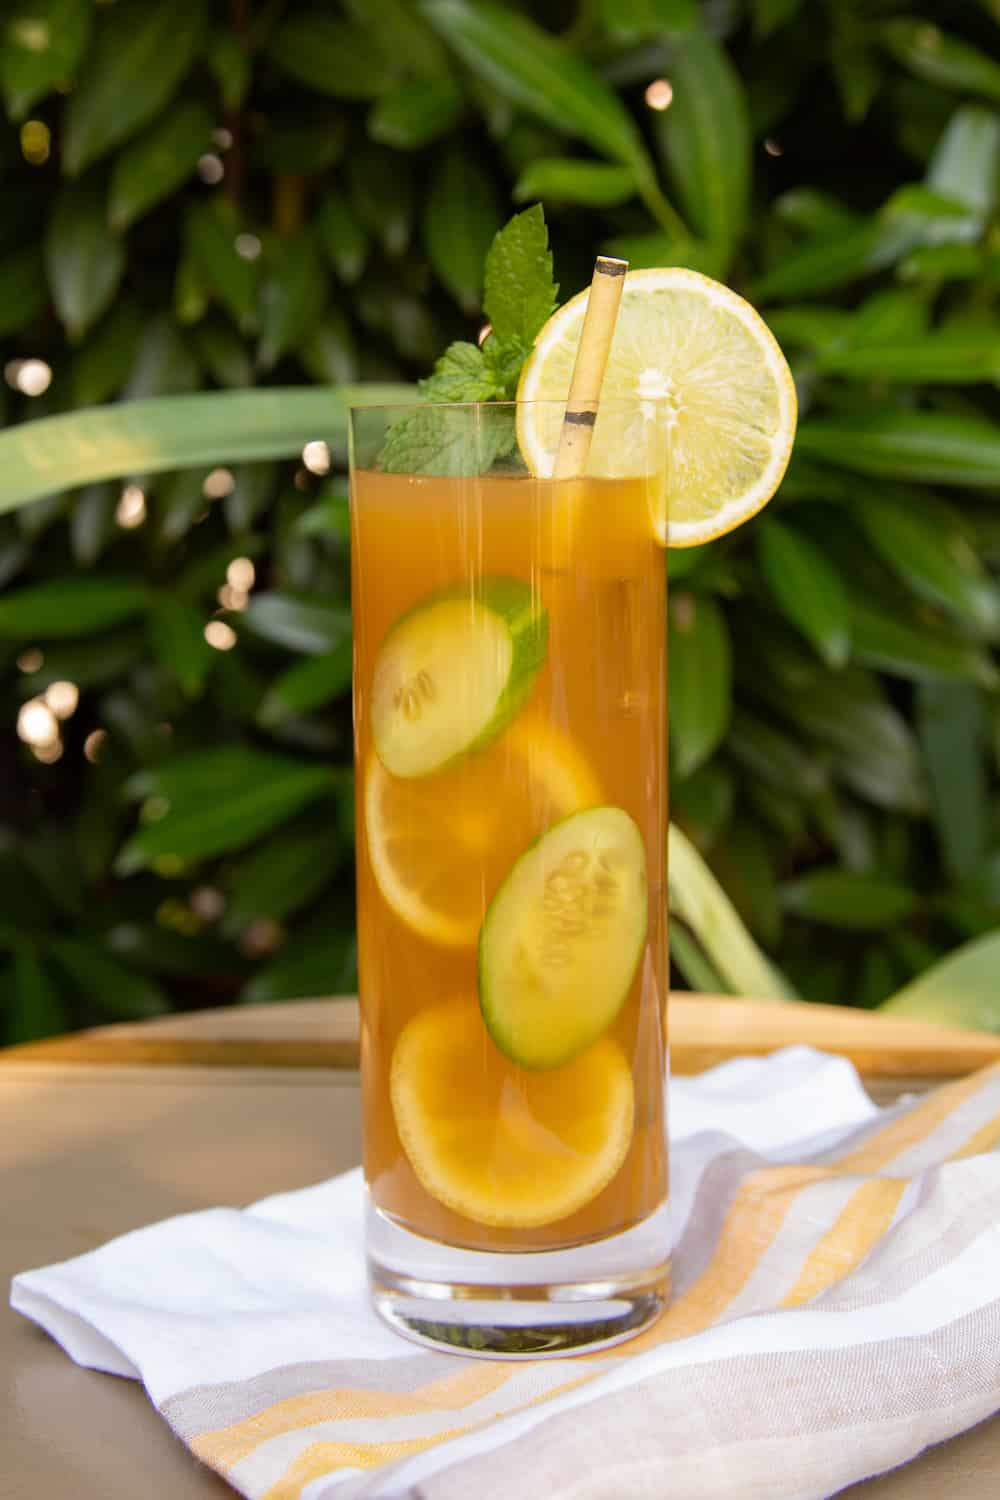 The Pimm's Palmer: An Arnold Palmer-Style Pimm's Cup